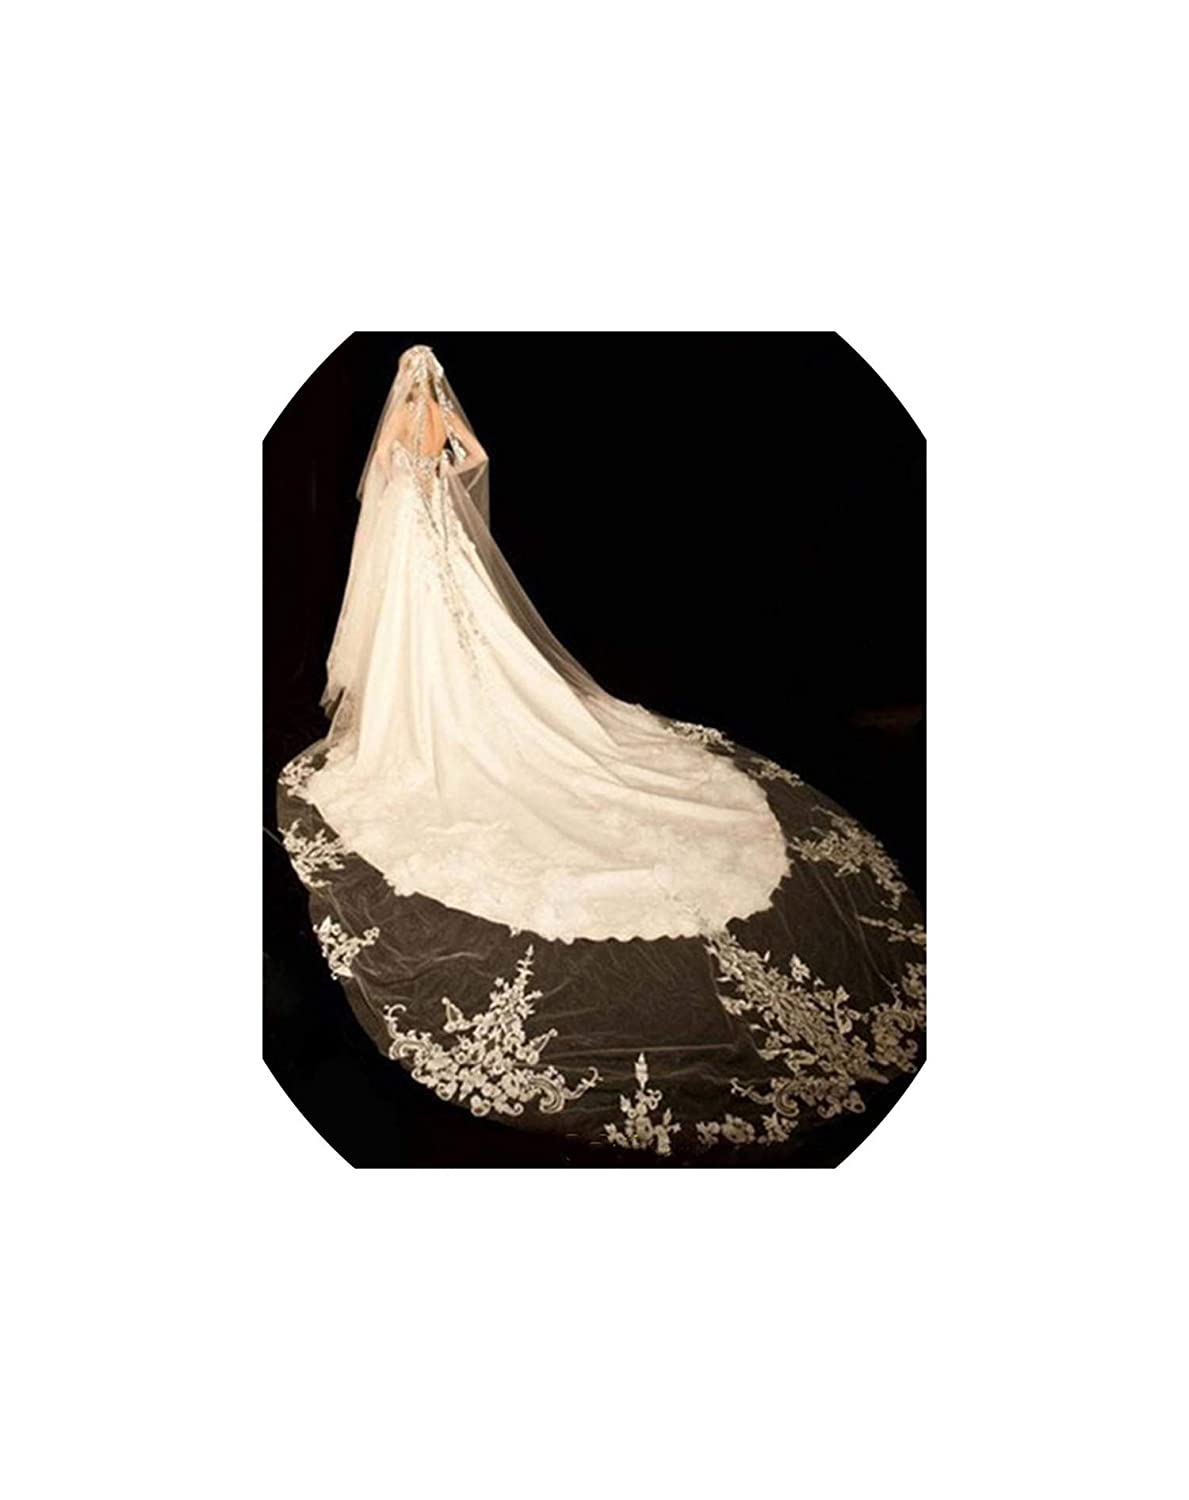 White 1 Layer Bridal Cathedral Wedding Veil With Applique Cryal Comb White Ivory Bridal Veil Wedding Accessories,White,500cm